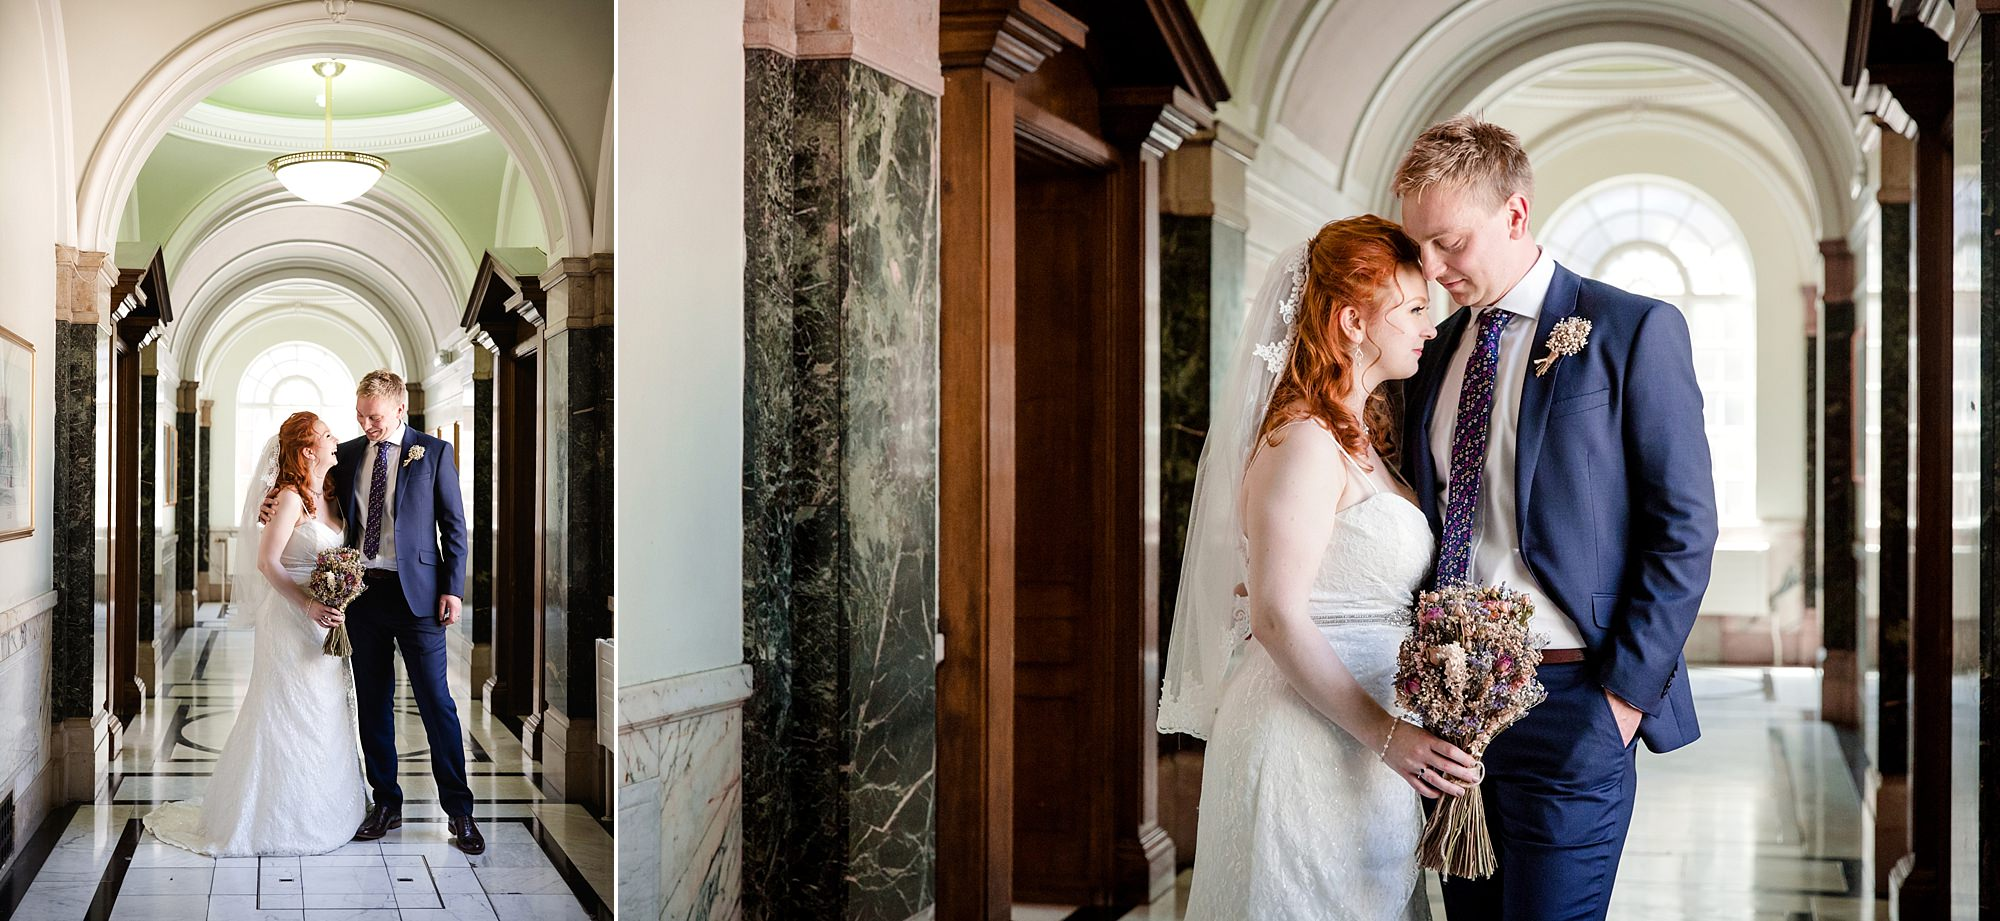 oyster shed wedding from kisses his bride at islington town hall wedding